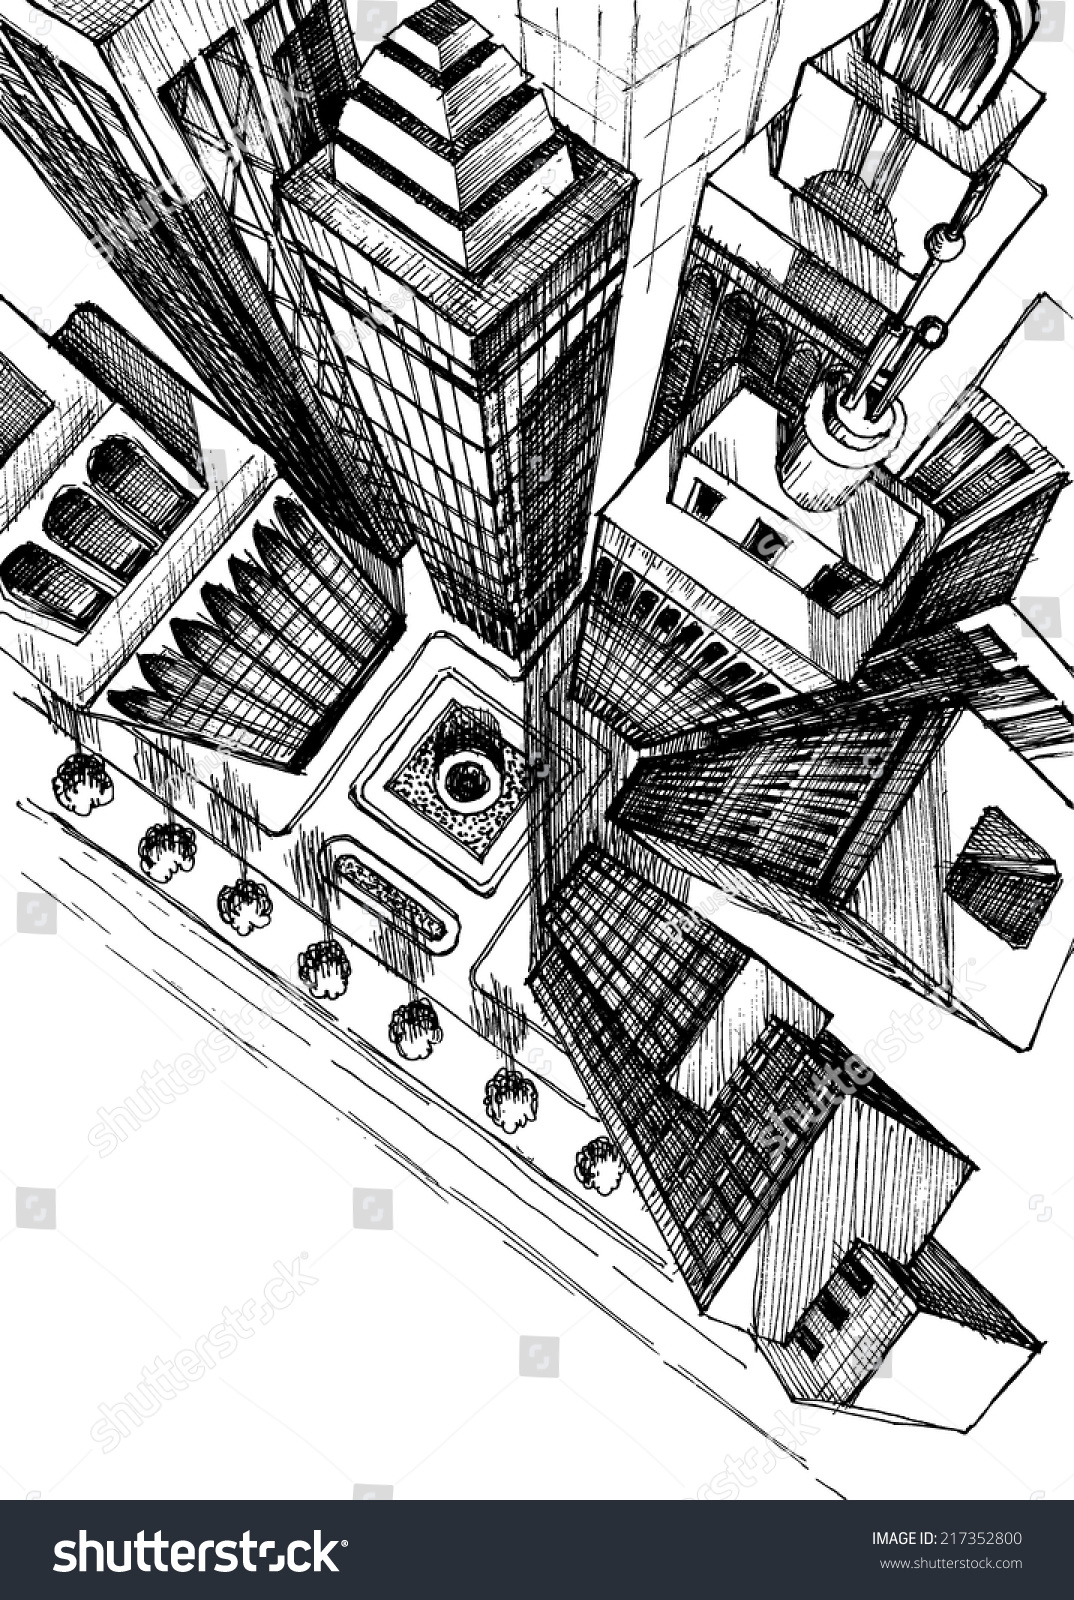 Top View City Skyscrapers Drawing Aerial Stock Vector ...